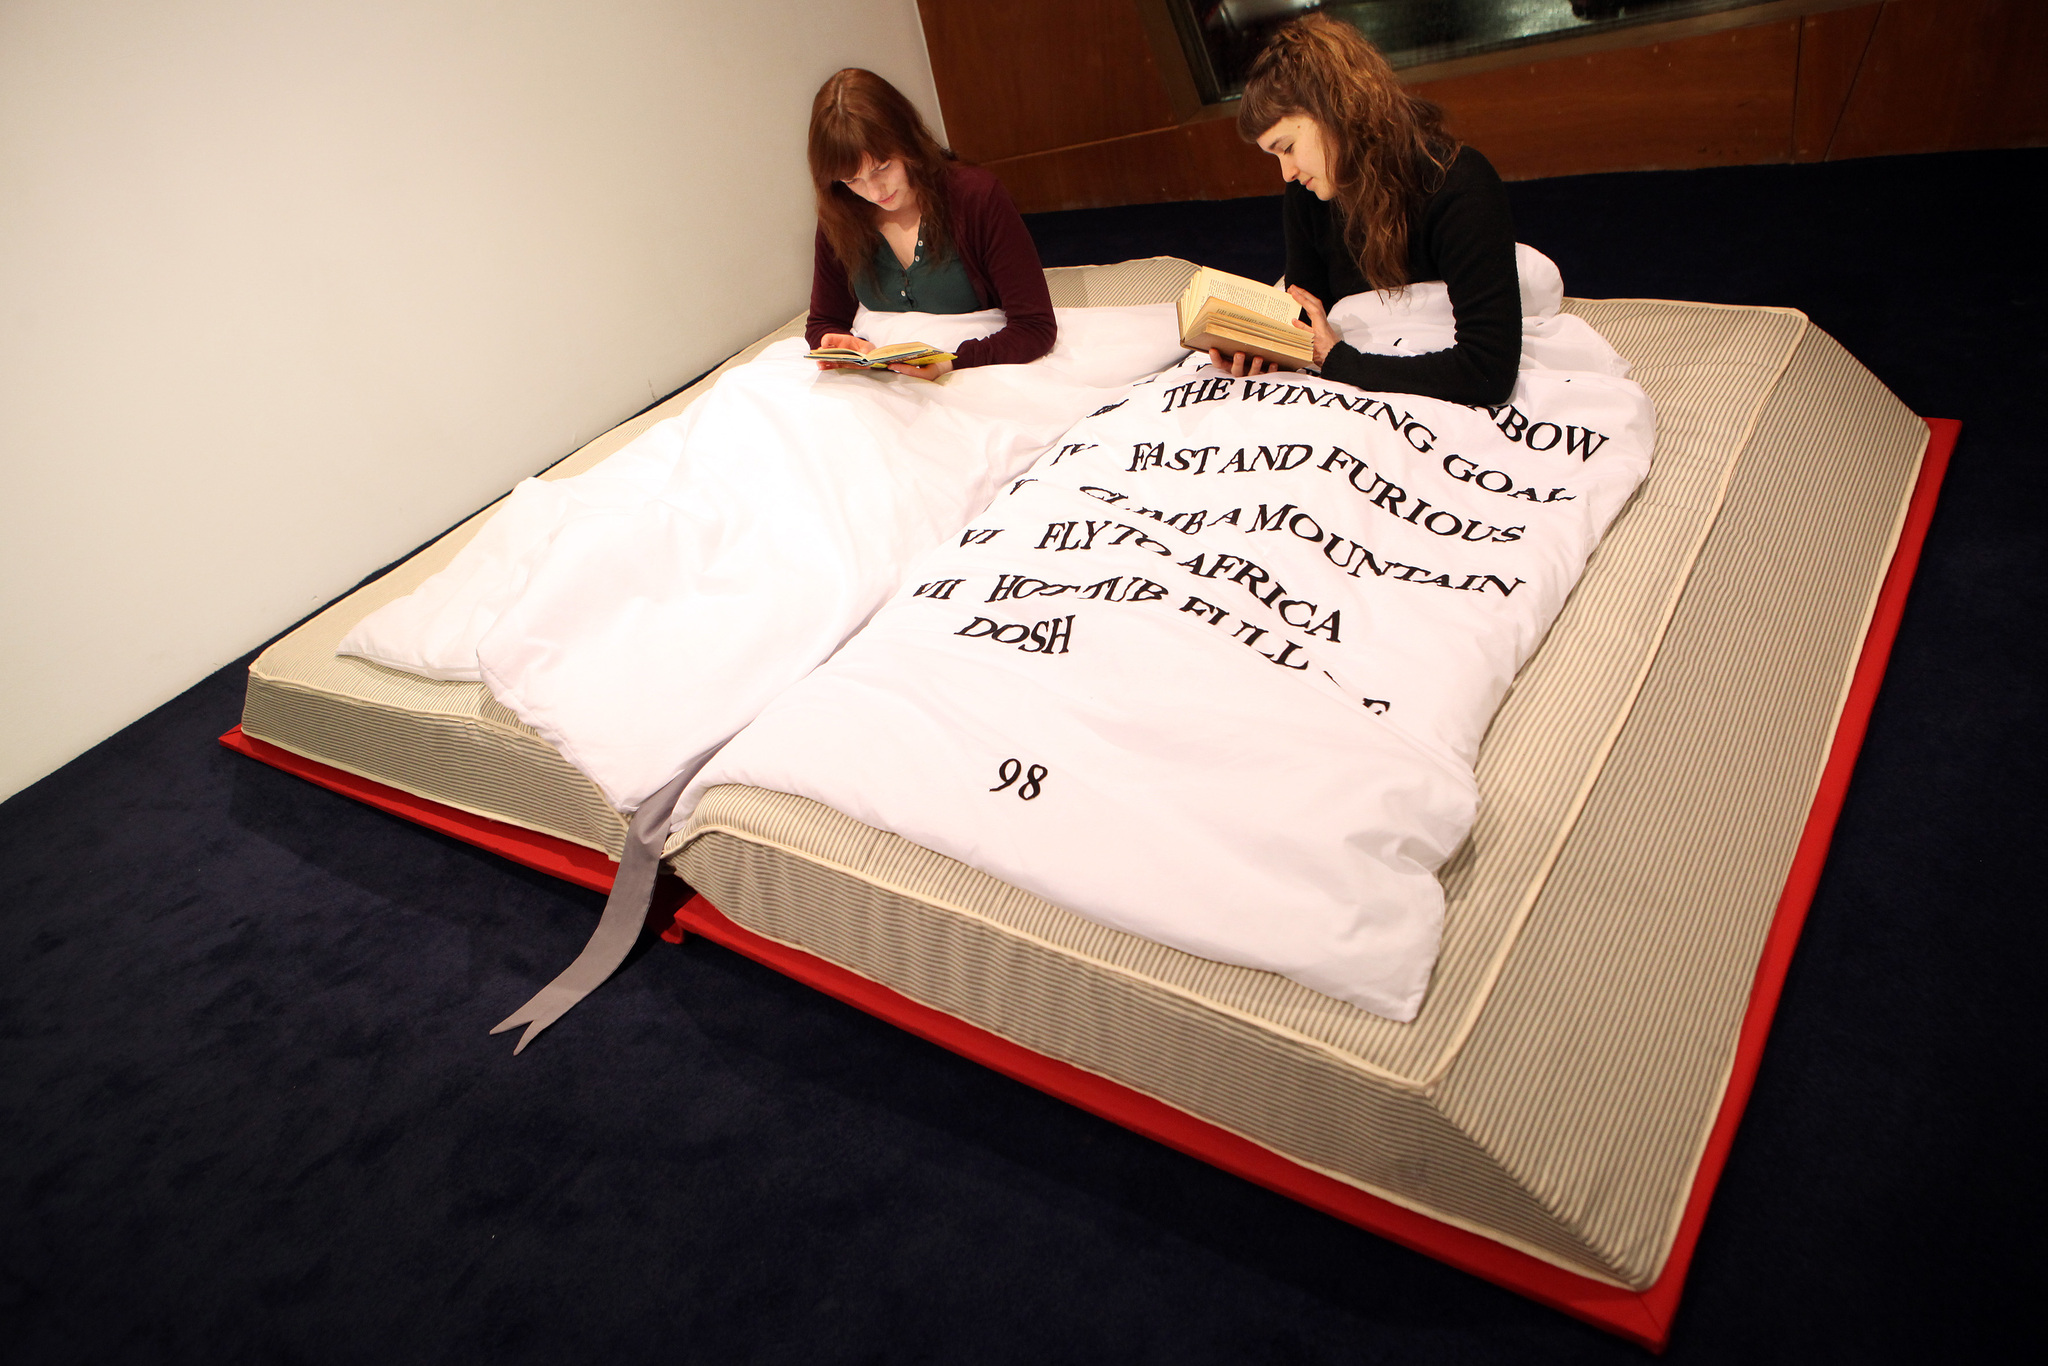 Weird Bed 14 amazing beds you'll never want to get out of in the morning